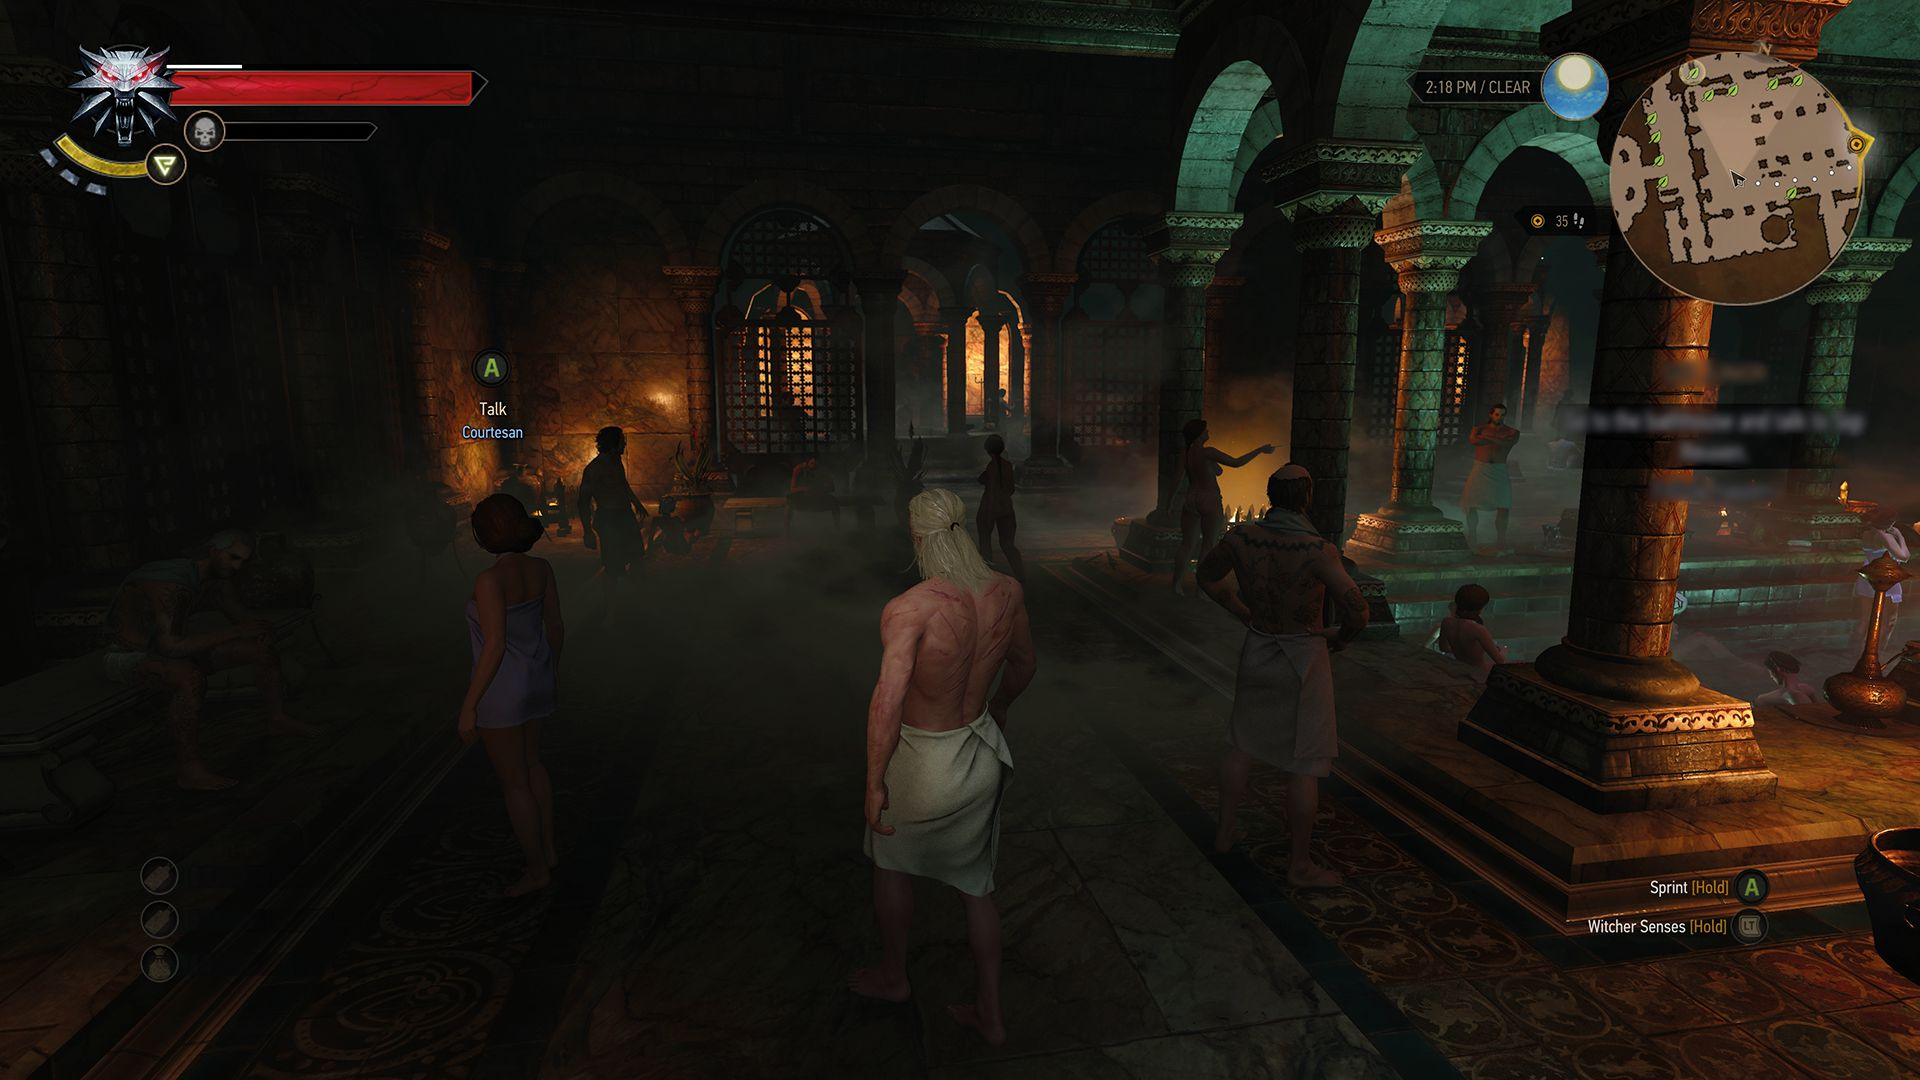 the_witcher_3_wild_hunt_whats_a_guy_gotta_do_around_here_to_get_a_fresh_towel_1430900933